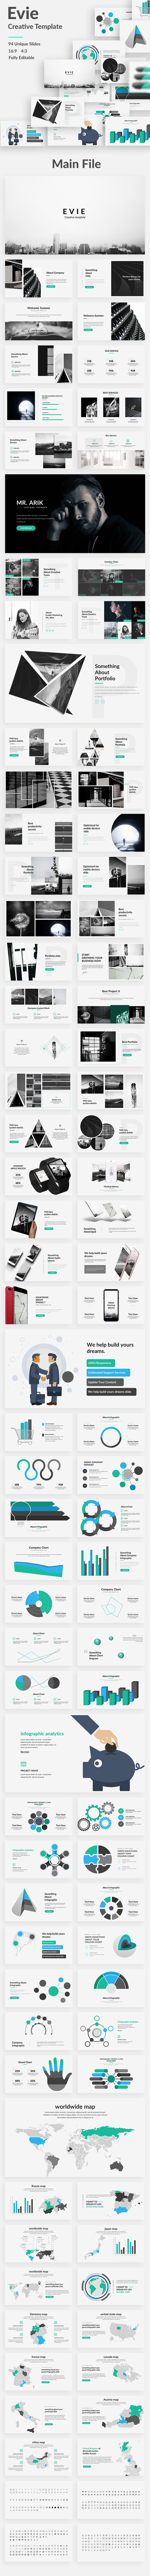 Evie Creative Keynote Template - Creative Keynote Templates